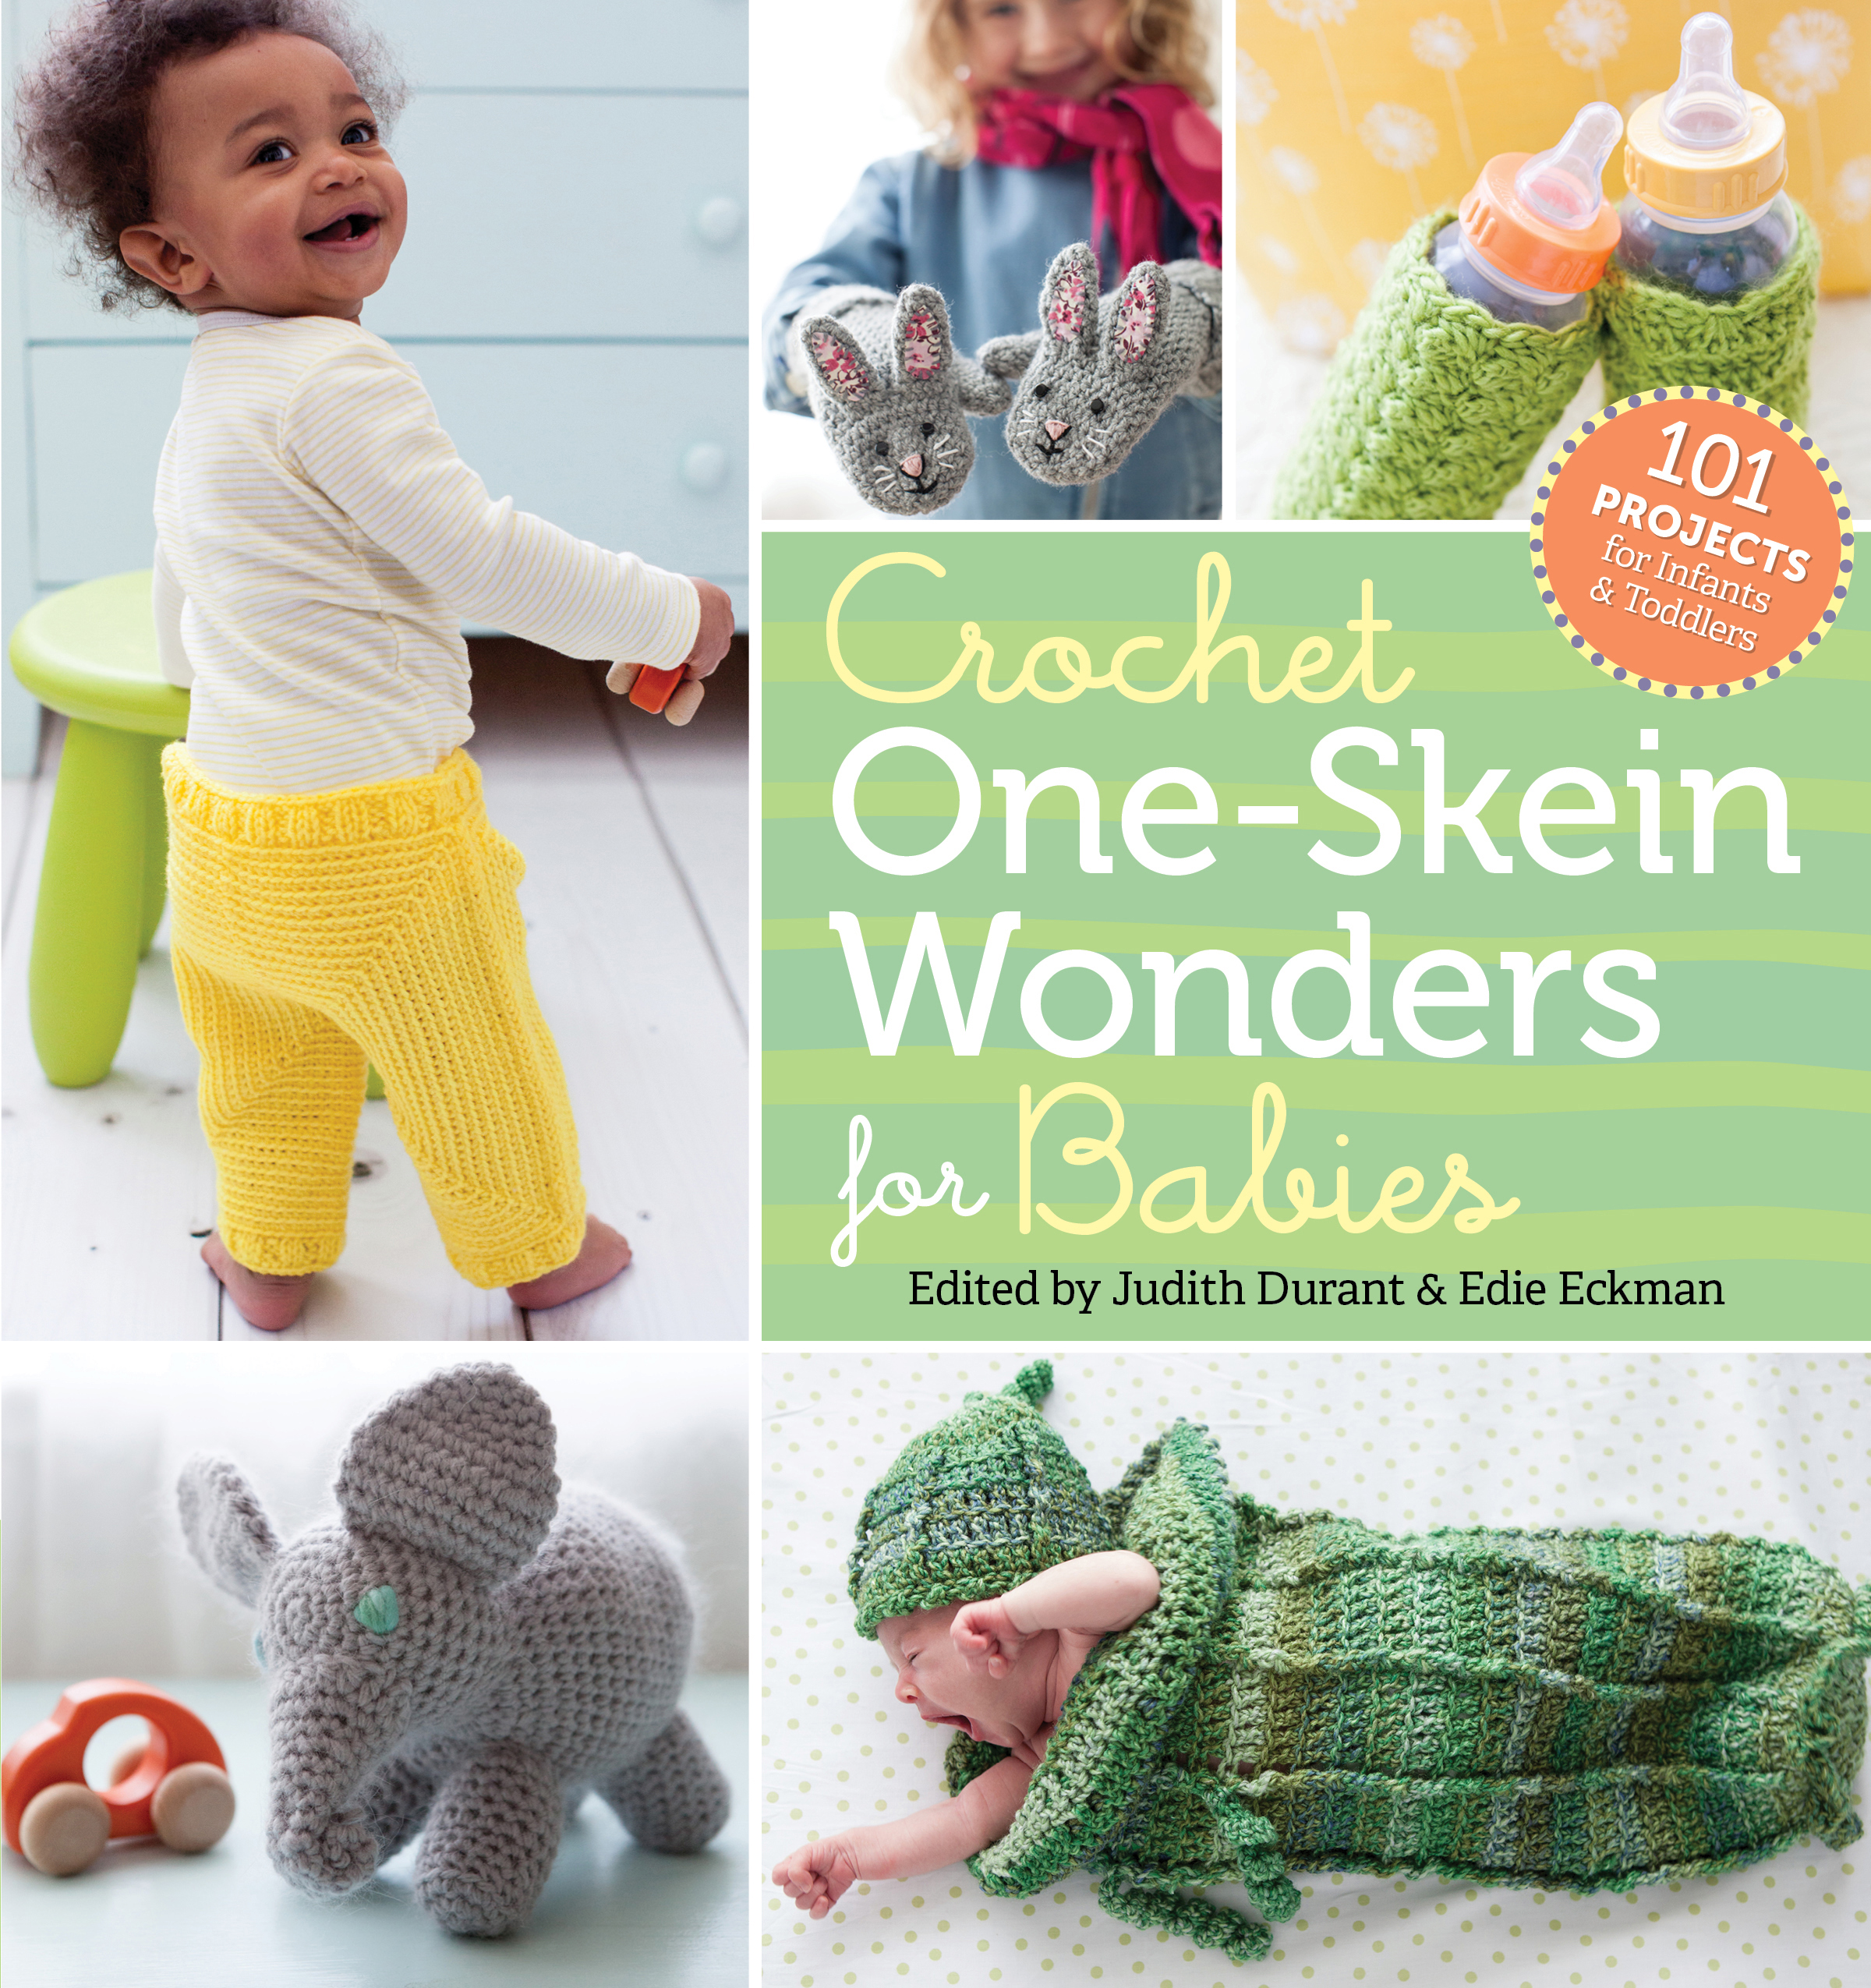 Crochet One-Skein Wonders<sup>®</sup> for Babies 101 Projects for Infants & Toddlers - Judith Durant